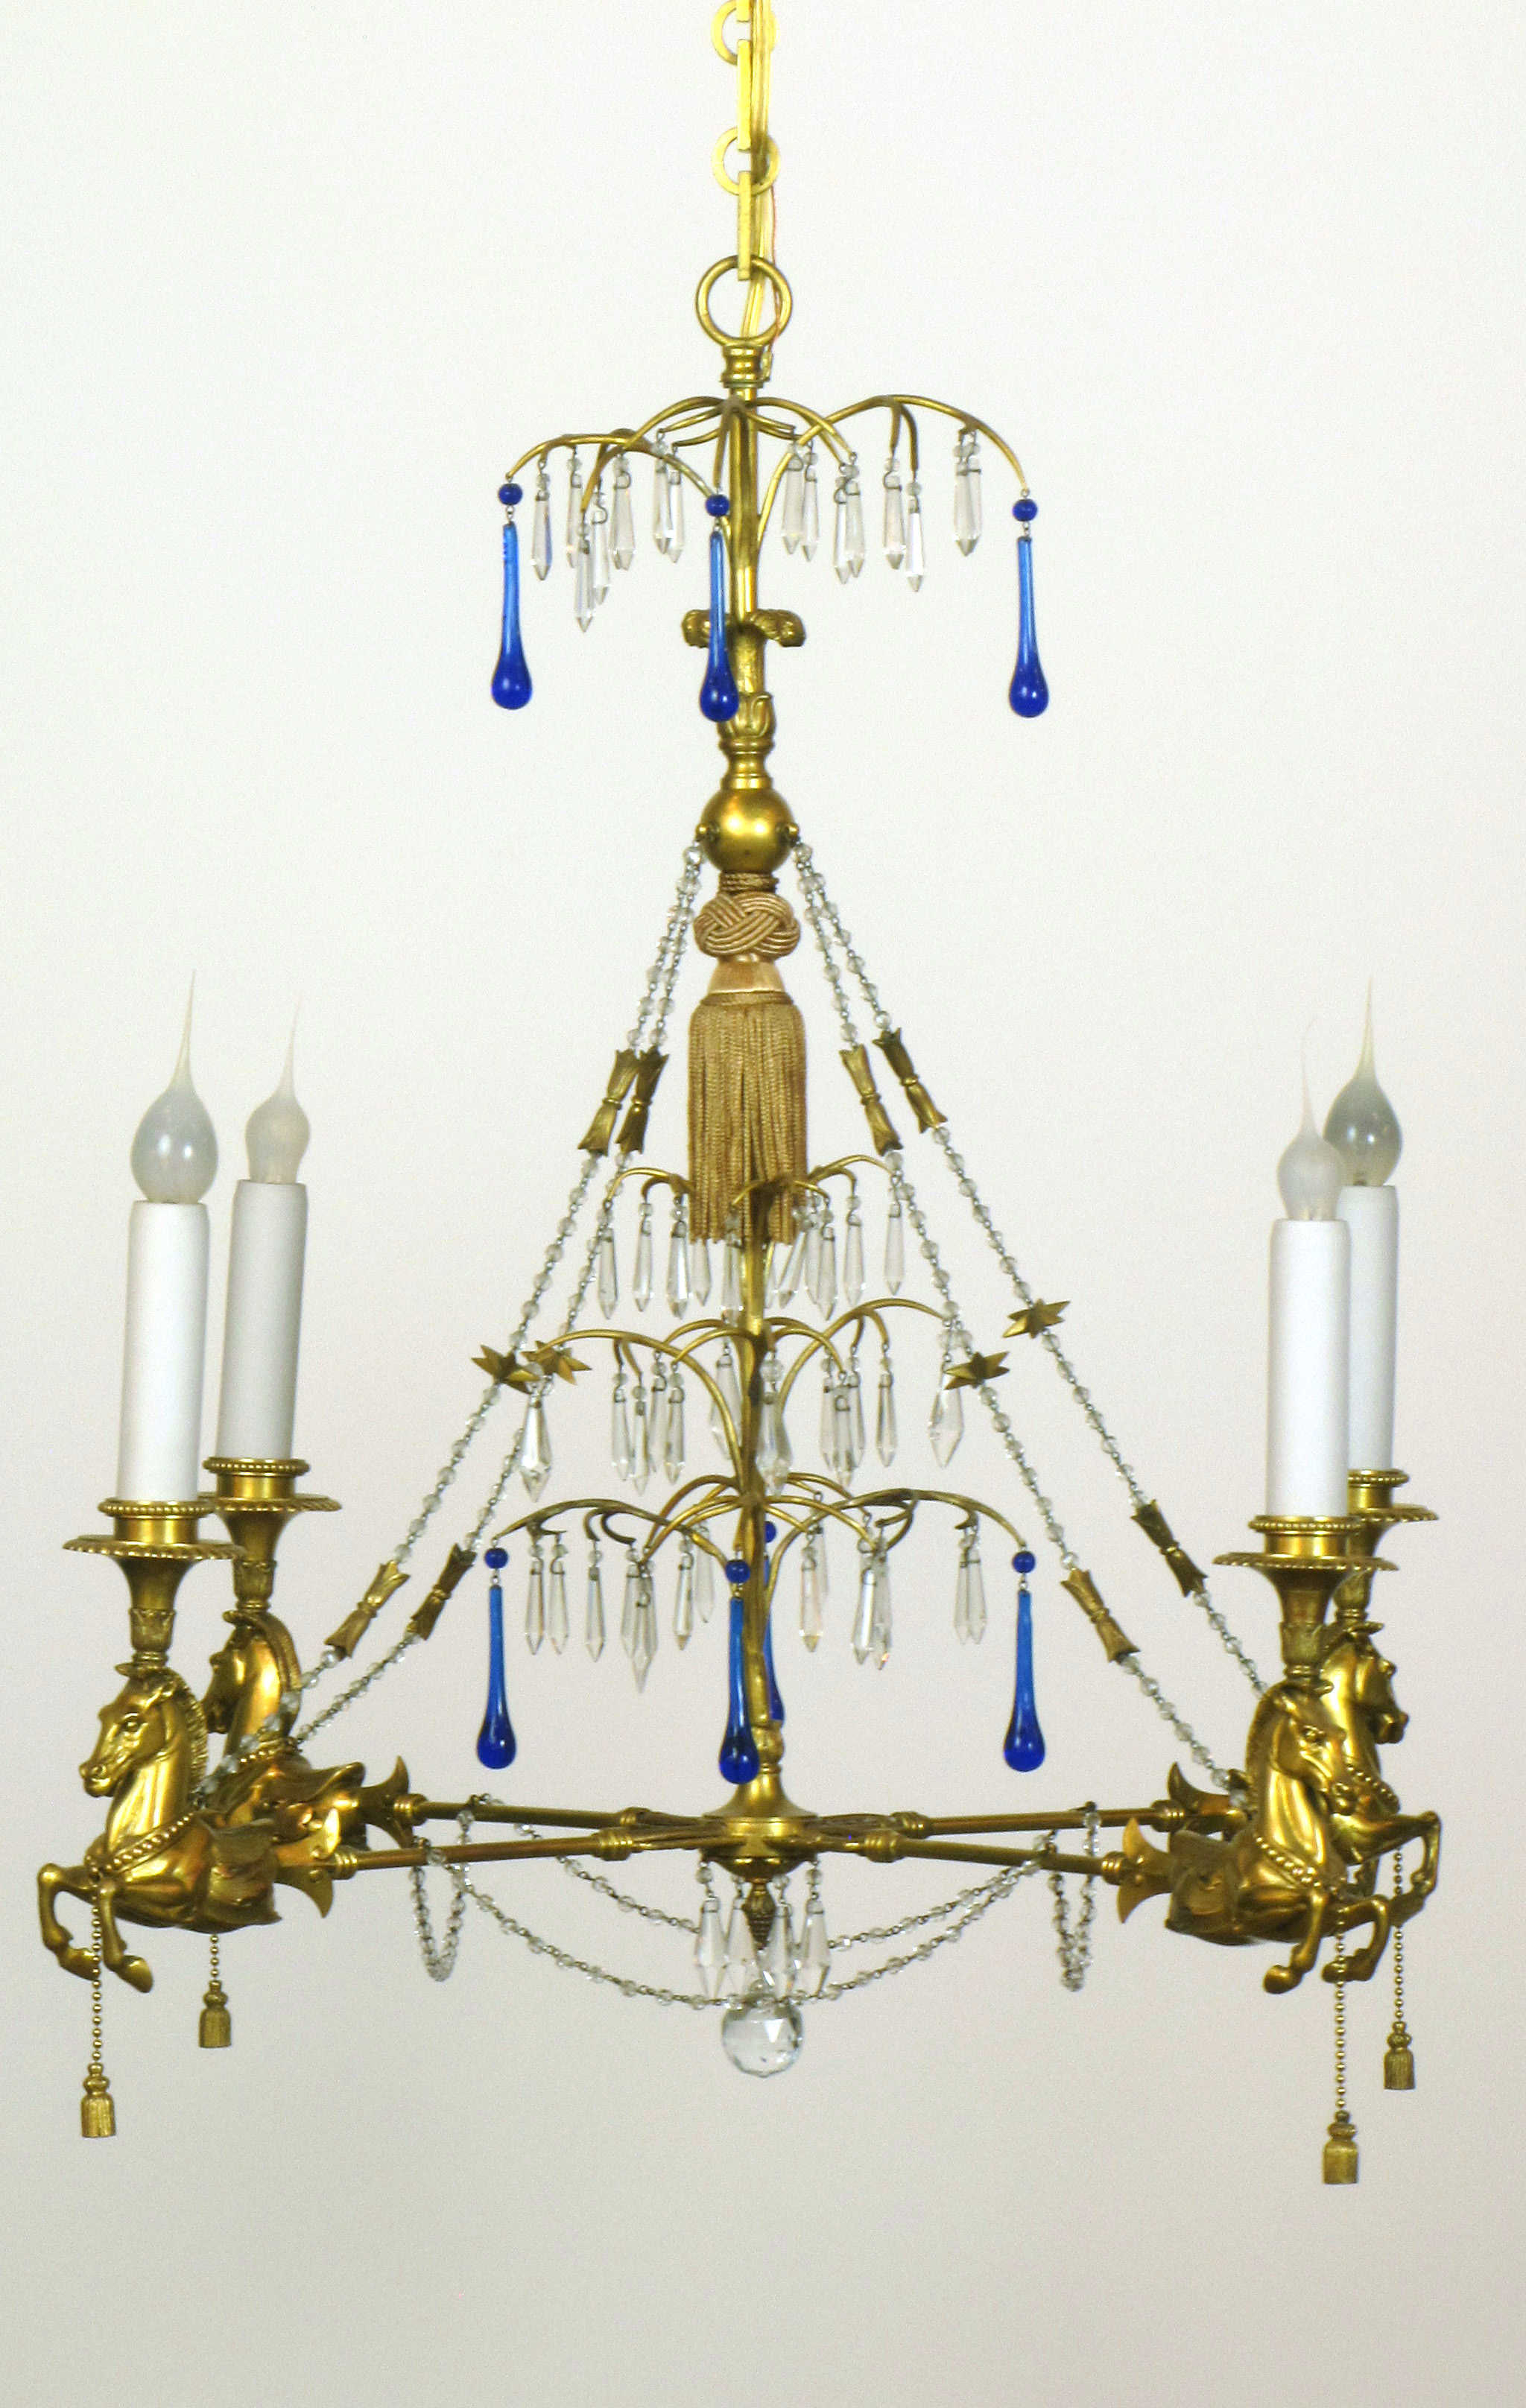 on pin romance adding take and your bryony modern inspired chandeliers elegance the vintage for to design byrony perfect sale chandelier light room is a